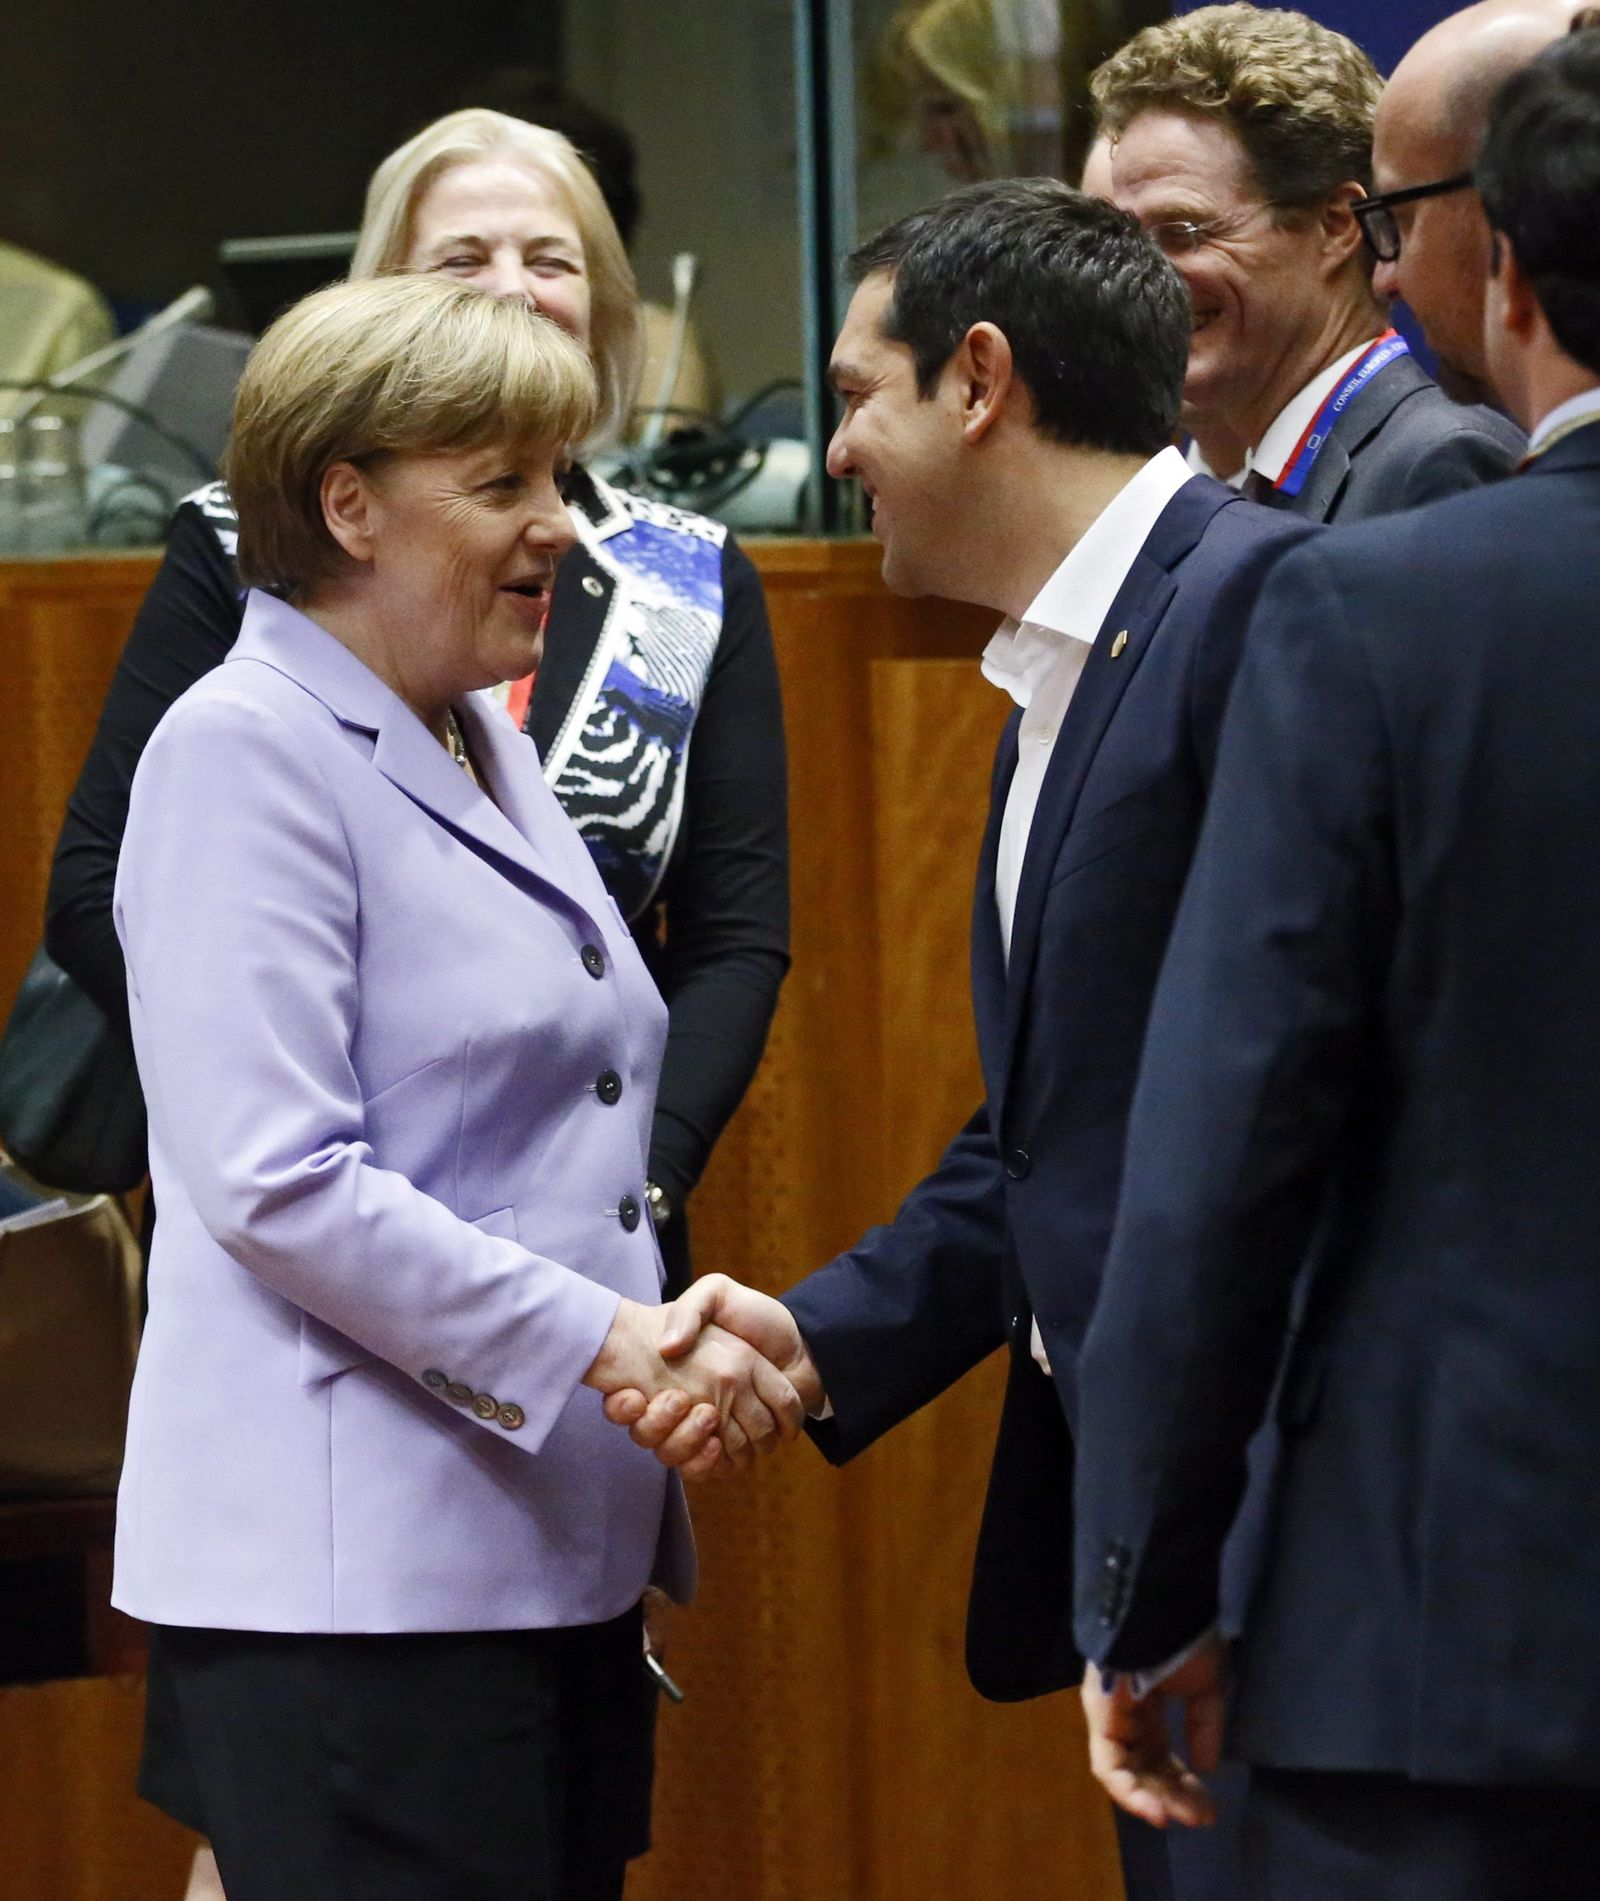 European Heads of States and Governments Summit Merkel Tsipras